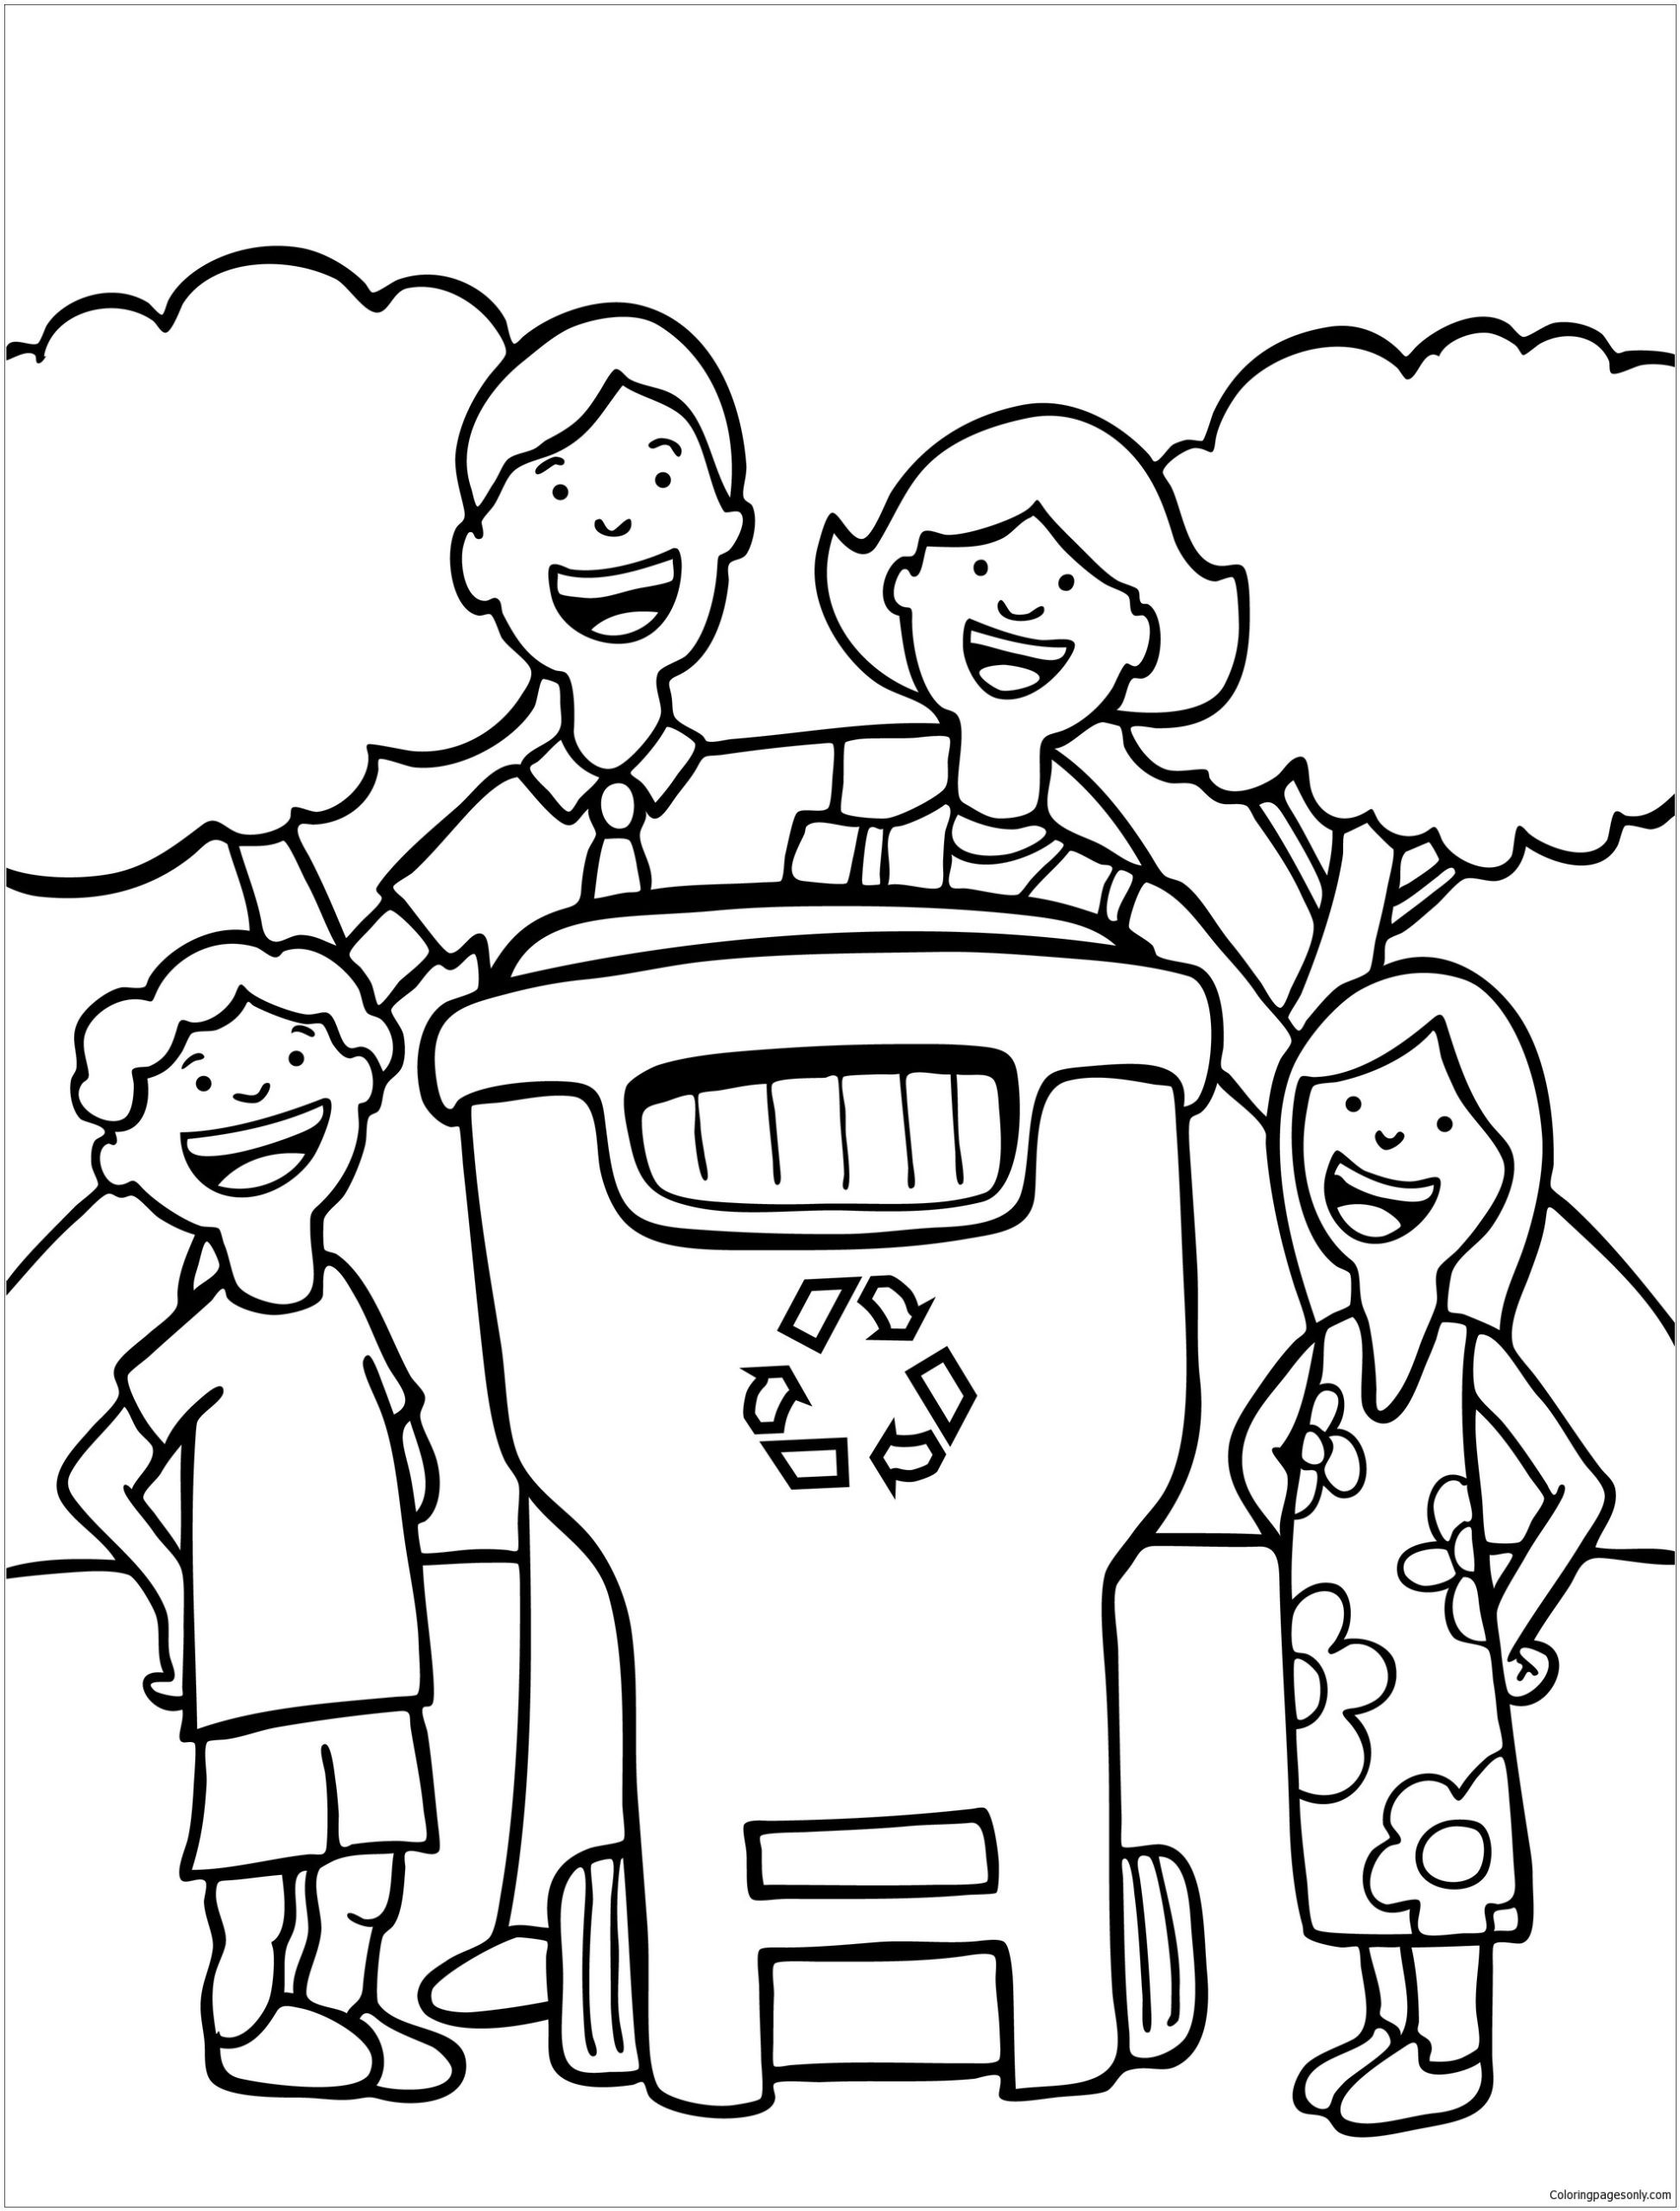 Recycling Worksheets for Middle School Michael Recycle Worksheet Printable Worksheets and